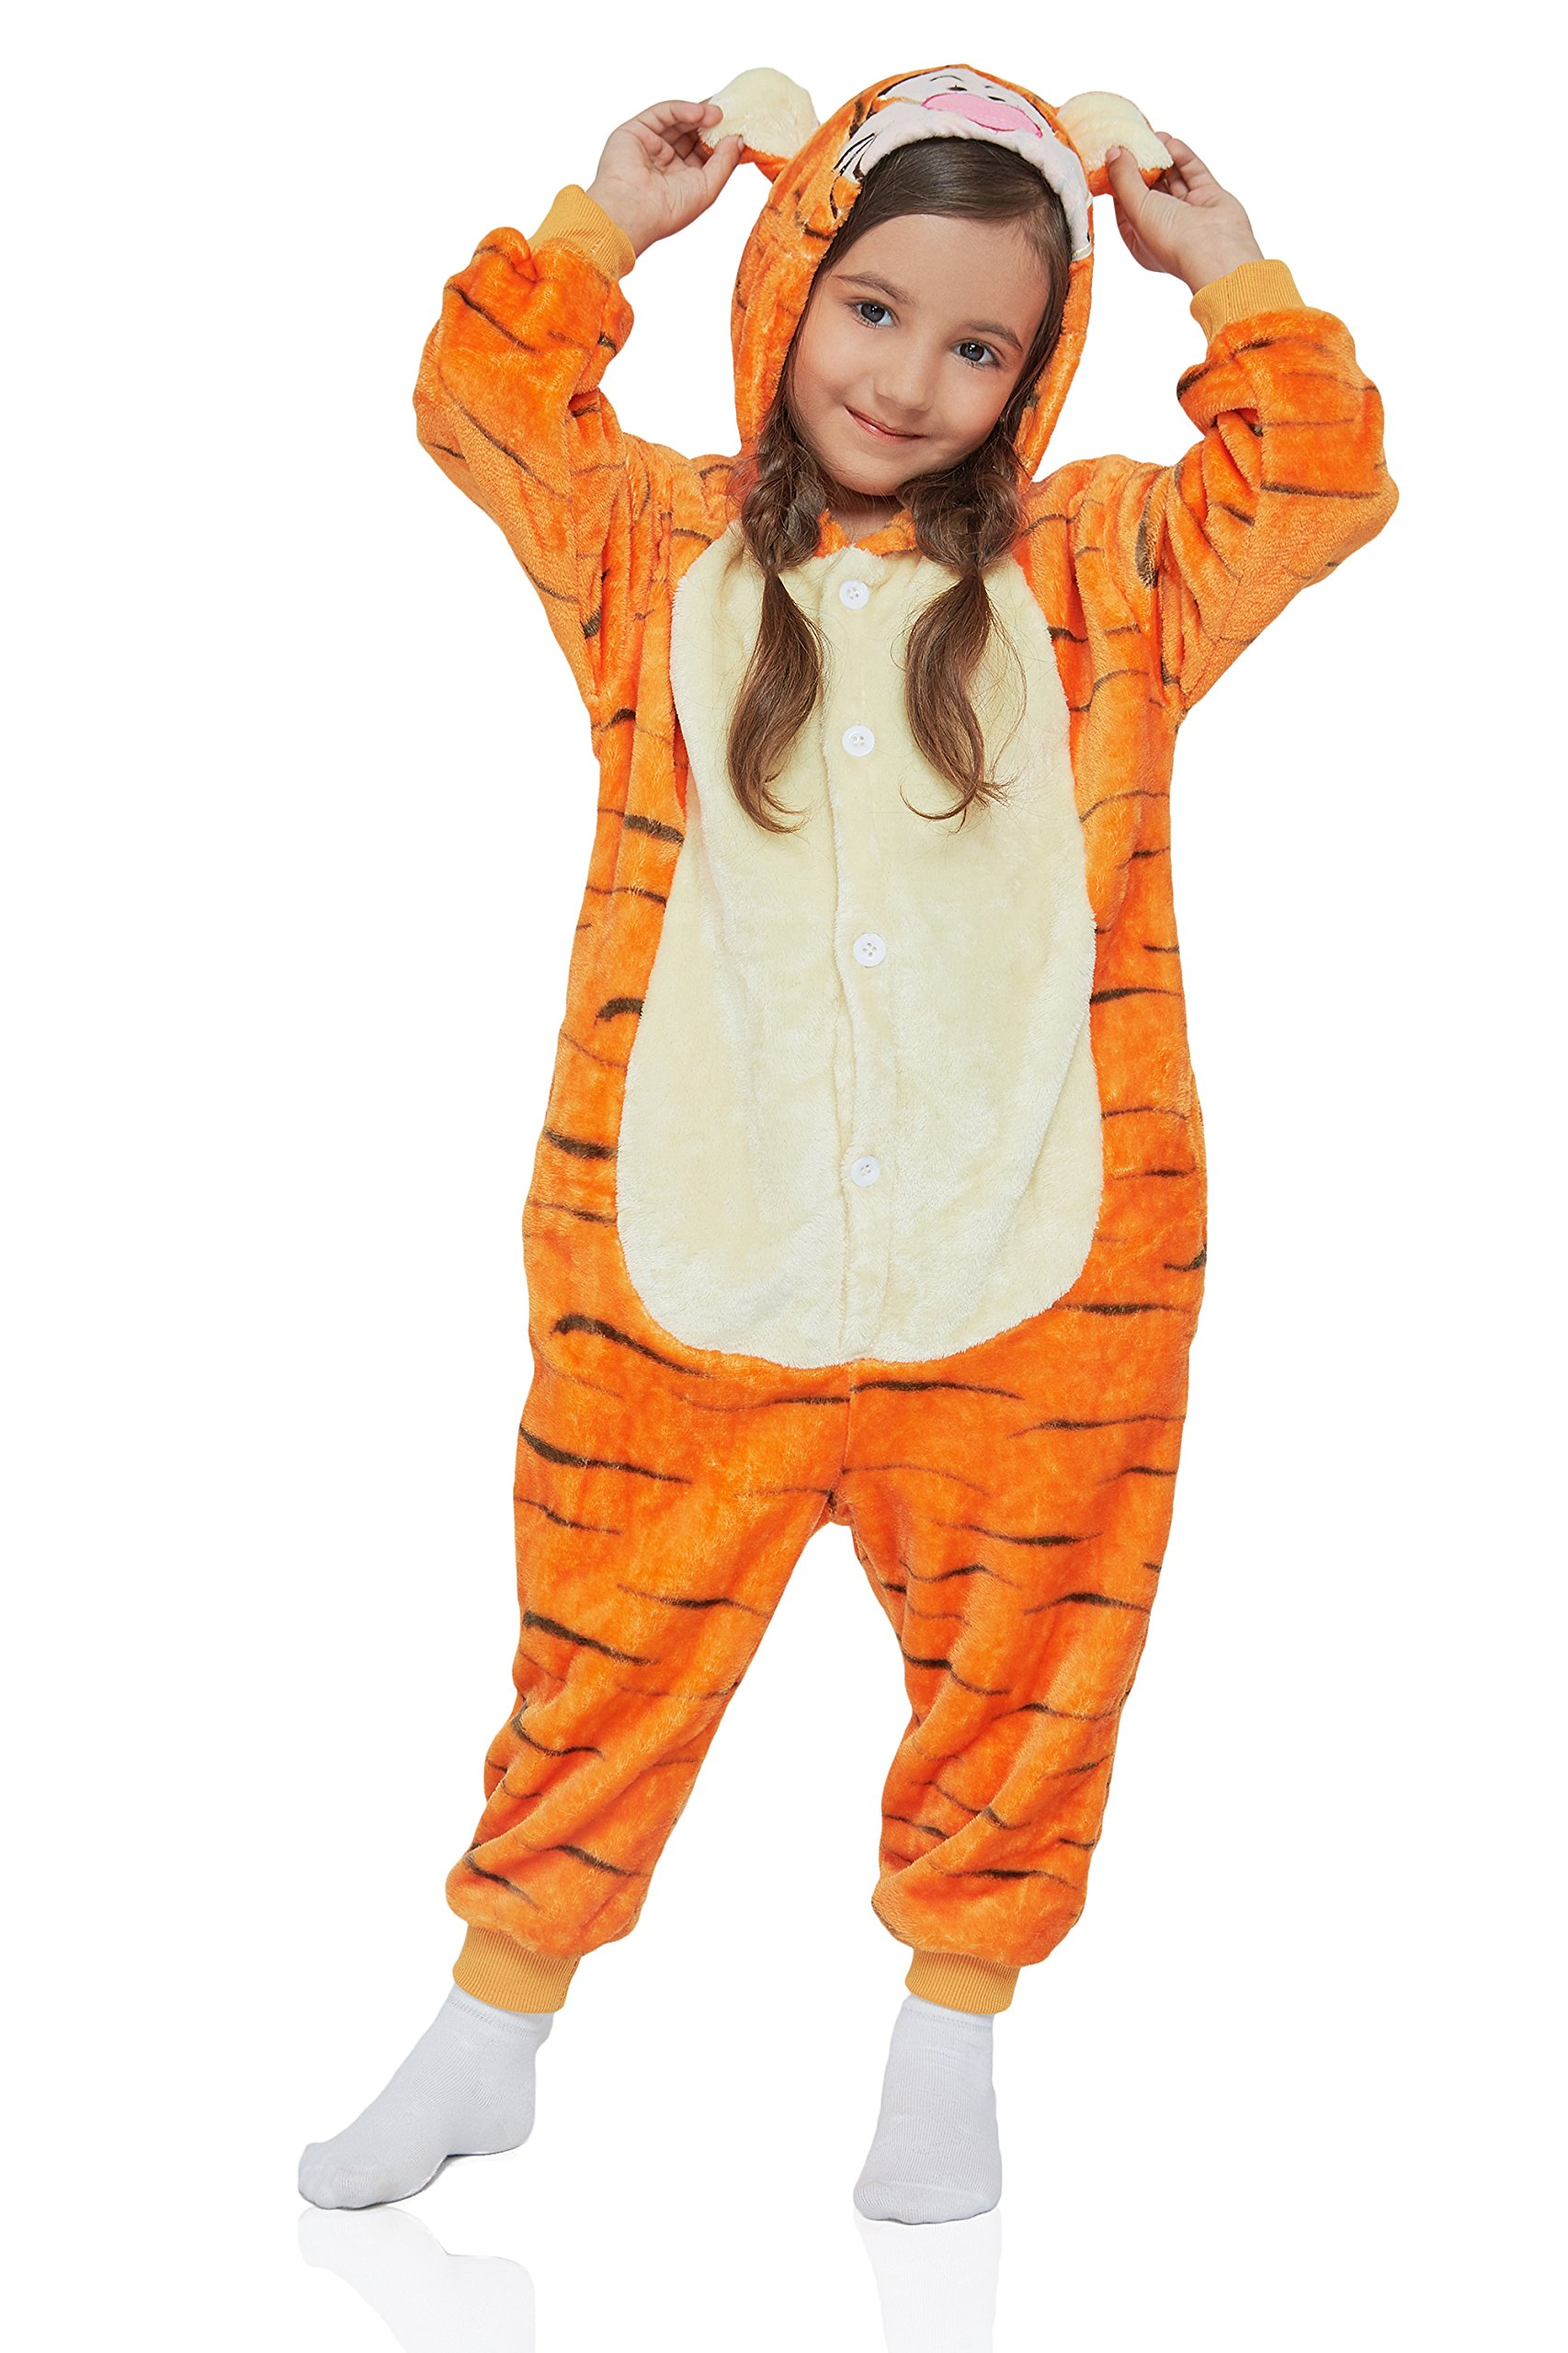 Kids Tiger Kigurumi Animal Onesie Pajamas Plush Onsie One Piece Cosplay Costume (Large, Orange, Yellow)